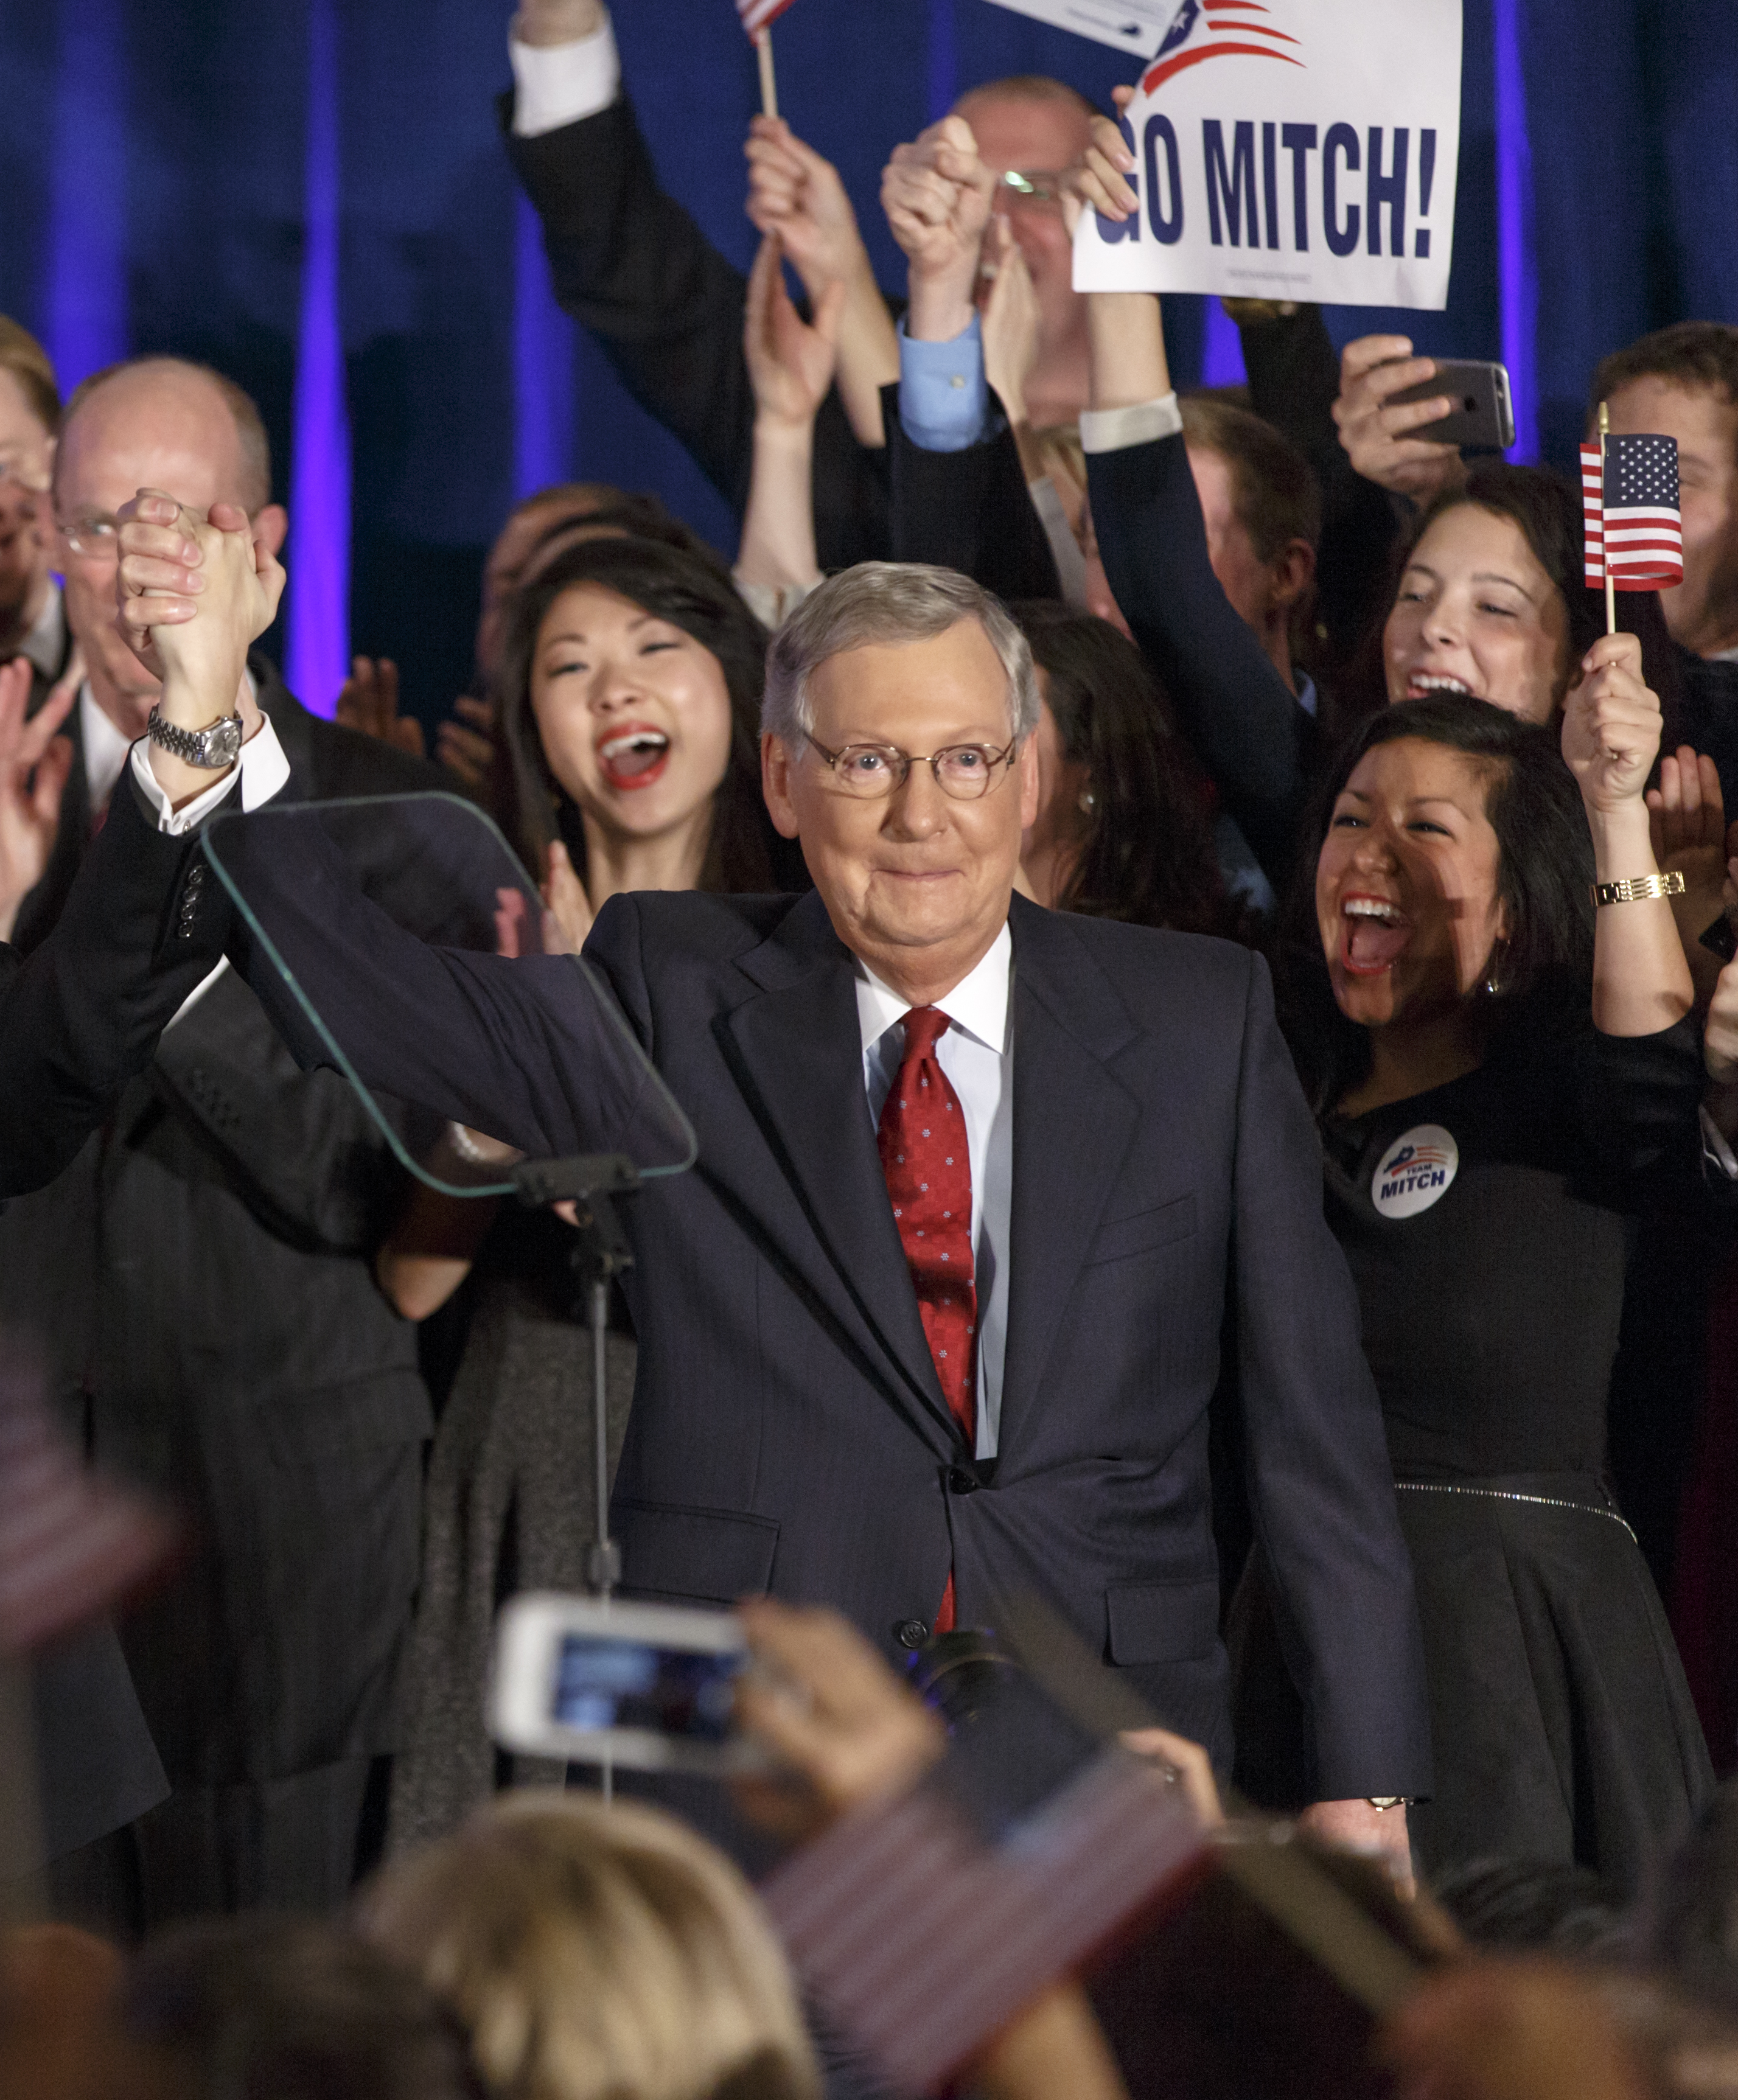 Senate Minority Leader Mitch McConnell, R-Ky., celebrates with his supporters at an election night... [+] party in Louisville, Ky.,Tuesday, Nov. 4, 2014. McConnell won a sixth term in Washington, with his eyes on the larger prize of GOP control of the Senate. The Kentucky U.S. Senate race, with McConnell, a 30-year incumbent, fighting off a spirited challenge from Democrat Alison Lundergan Grimes, has been among the most combative and closely watched contests that could determine the balance of power in Congress. (AP Photo/J. Scott Applewhite)